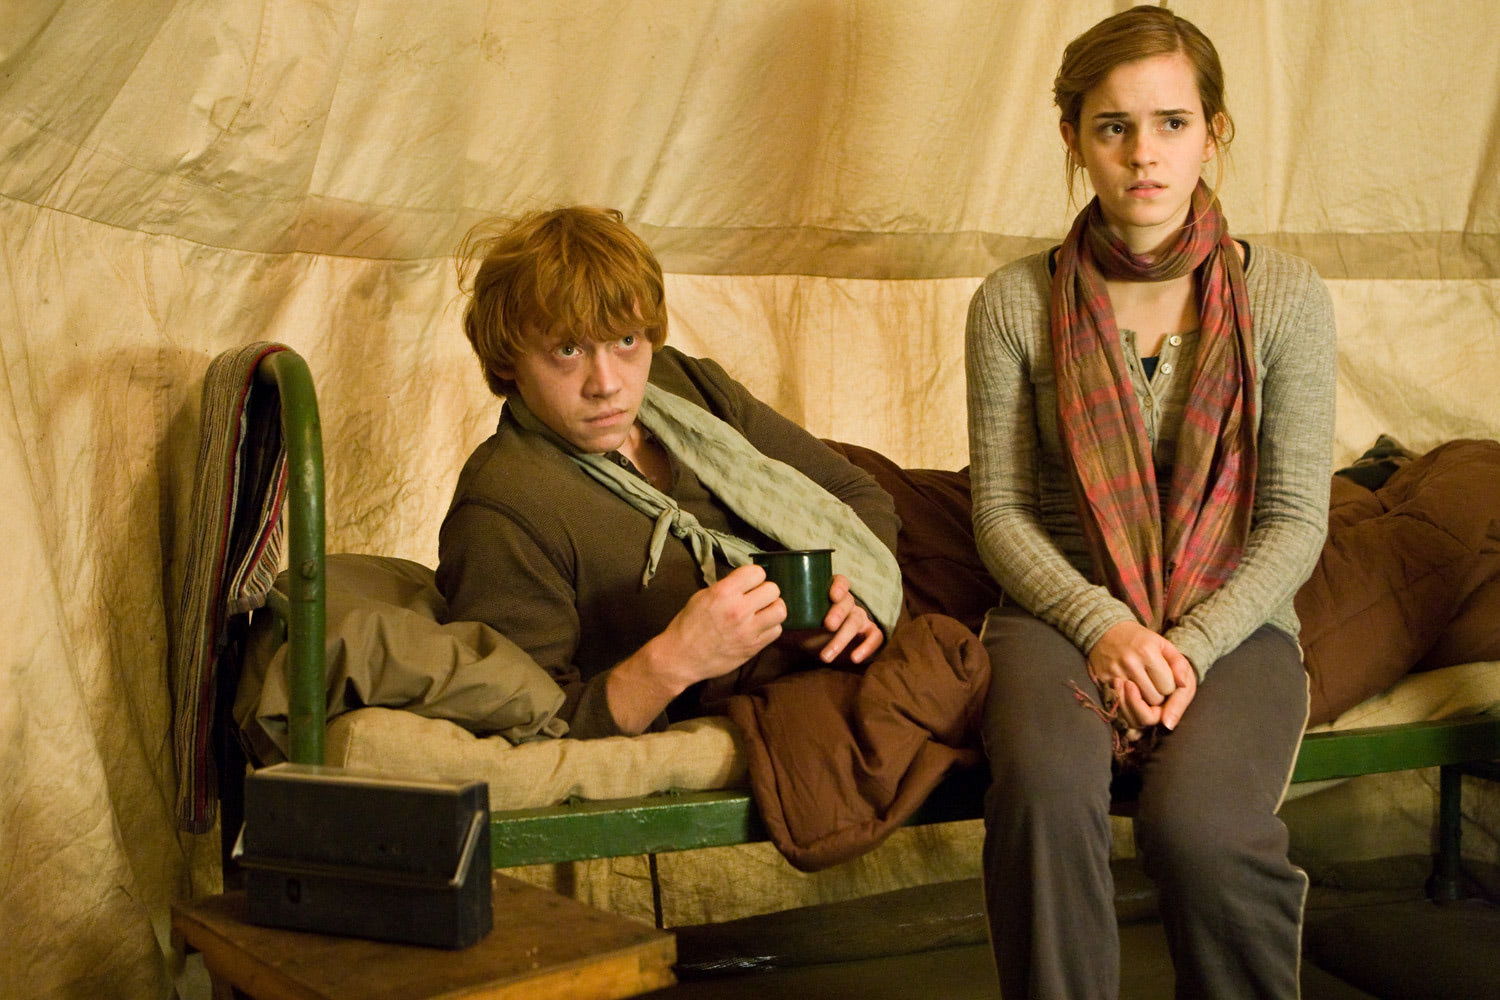 Ron and Hermione in the tent